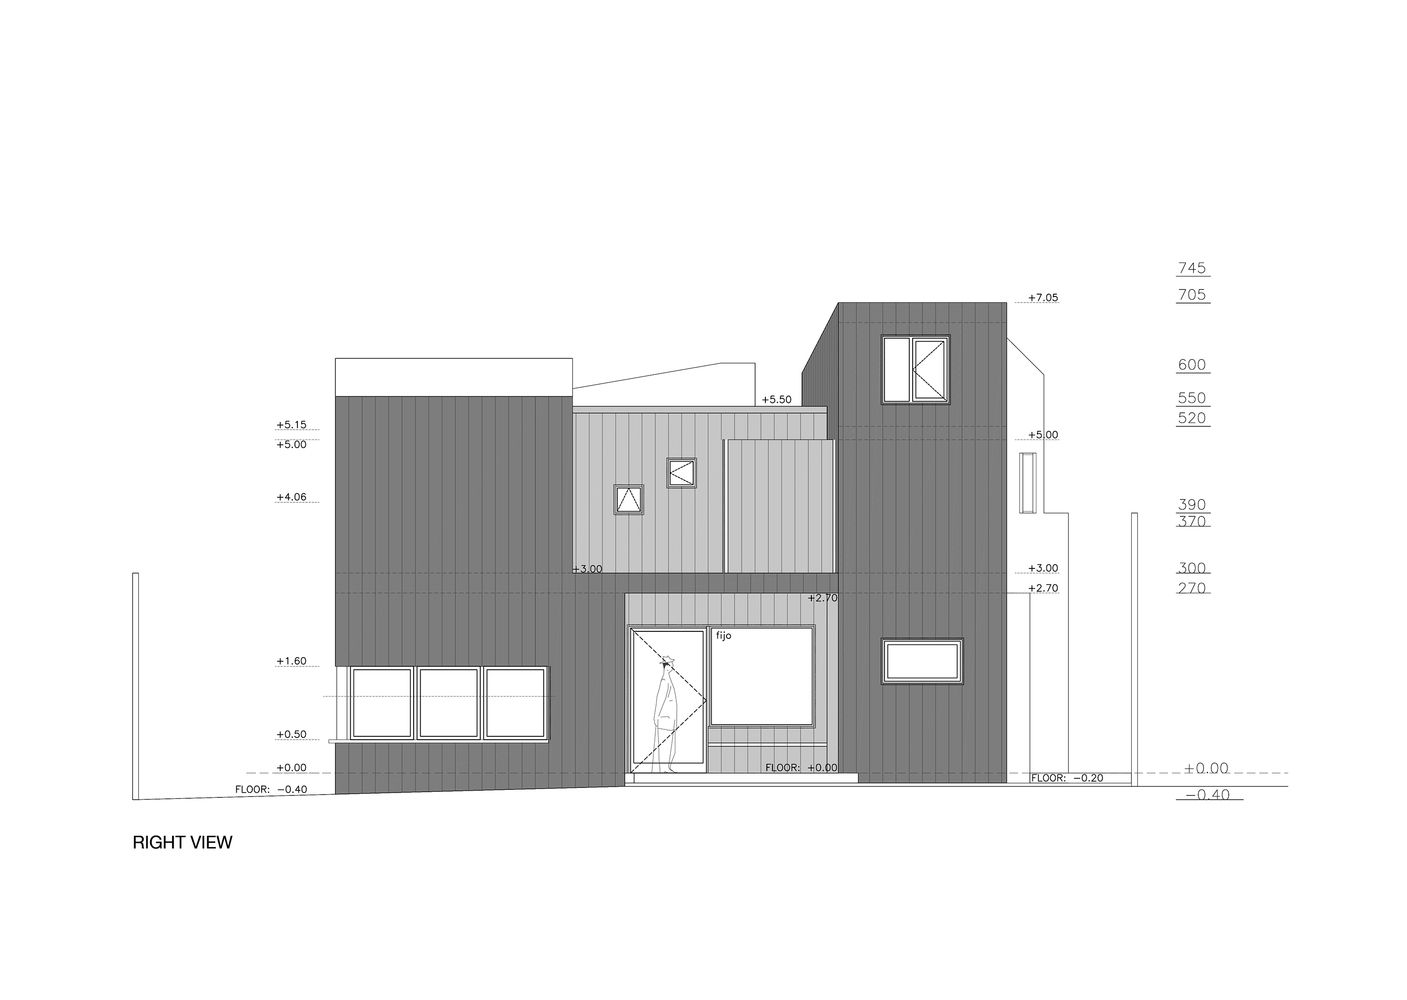 Gallery of Prototype House in Japan / Javier Mariscal + Lara Pérez-Porro + Tatsumi Planning - 20